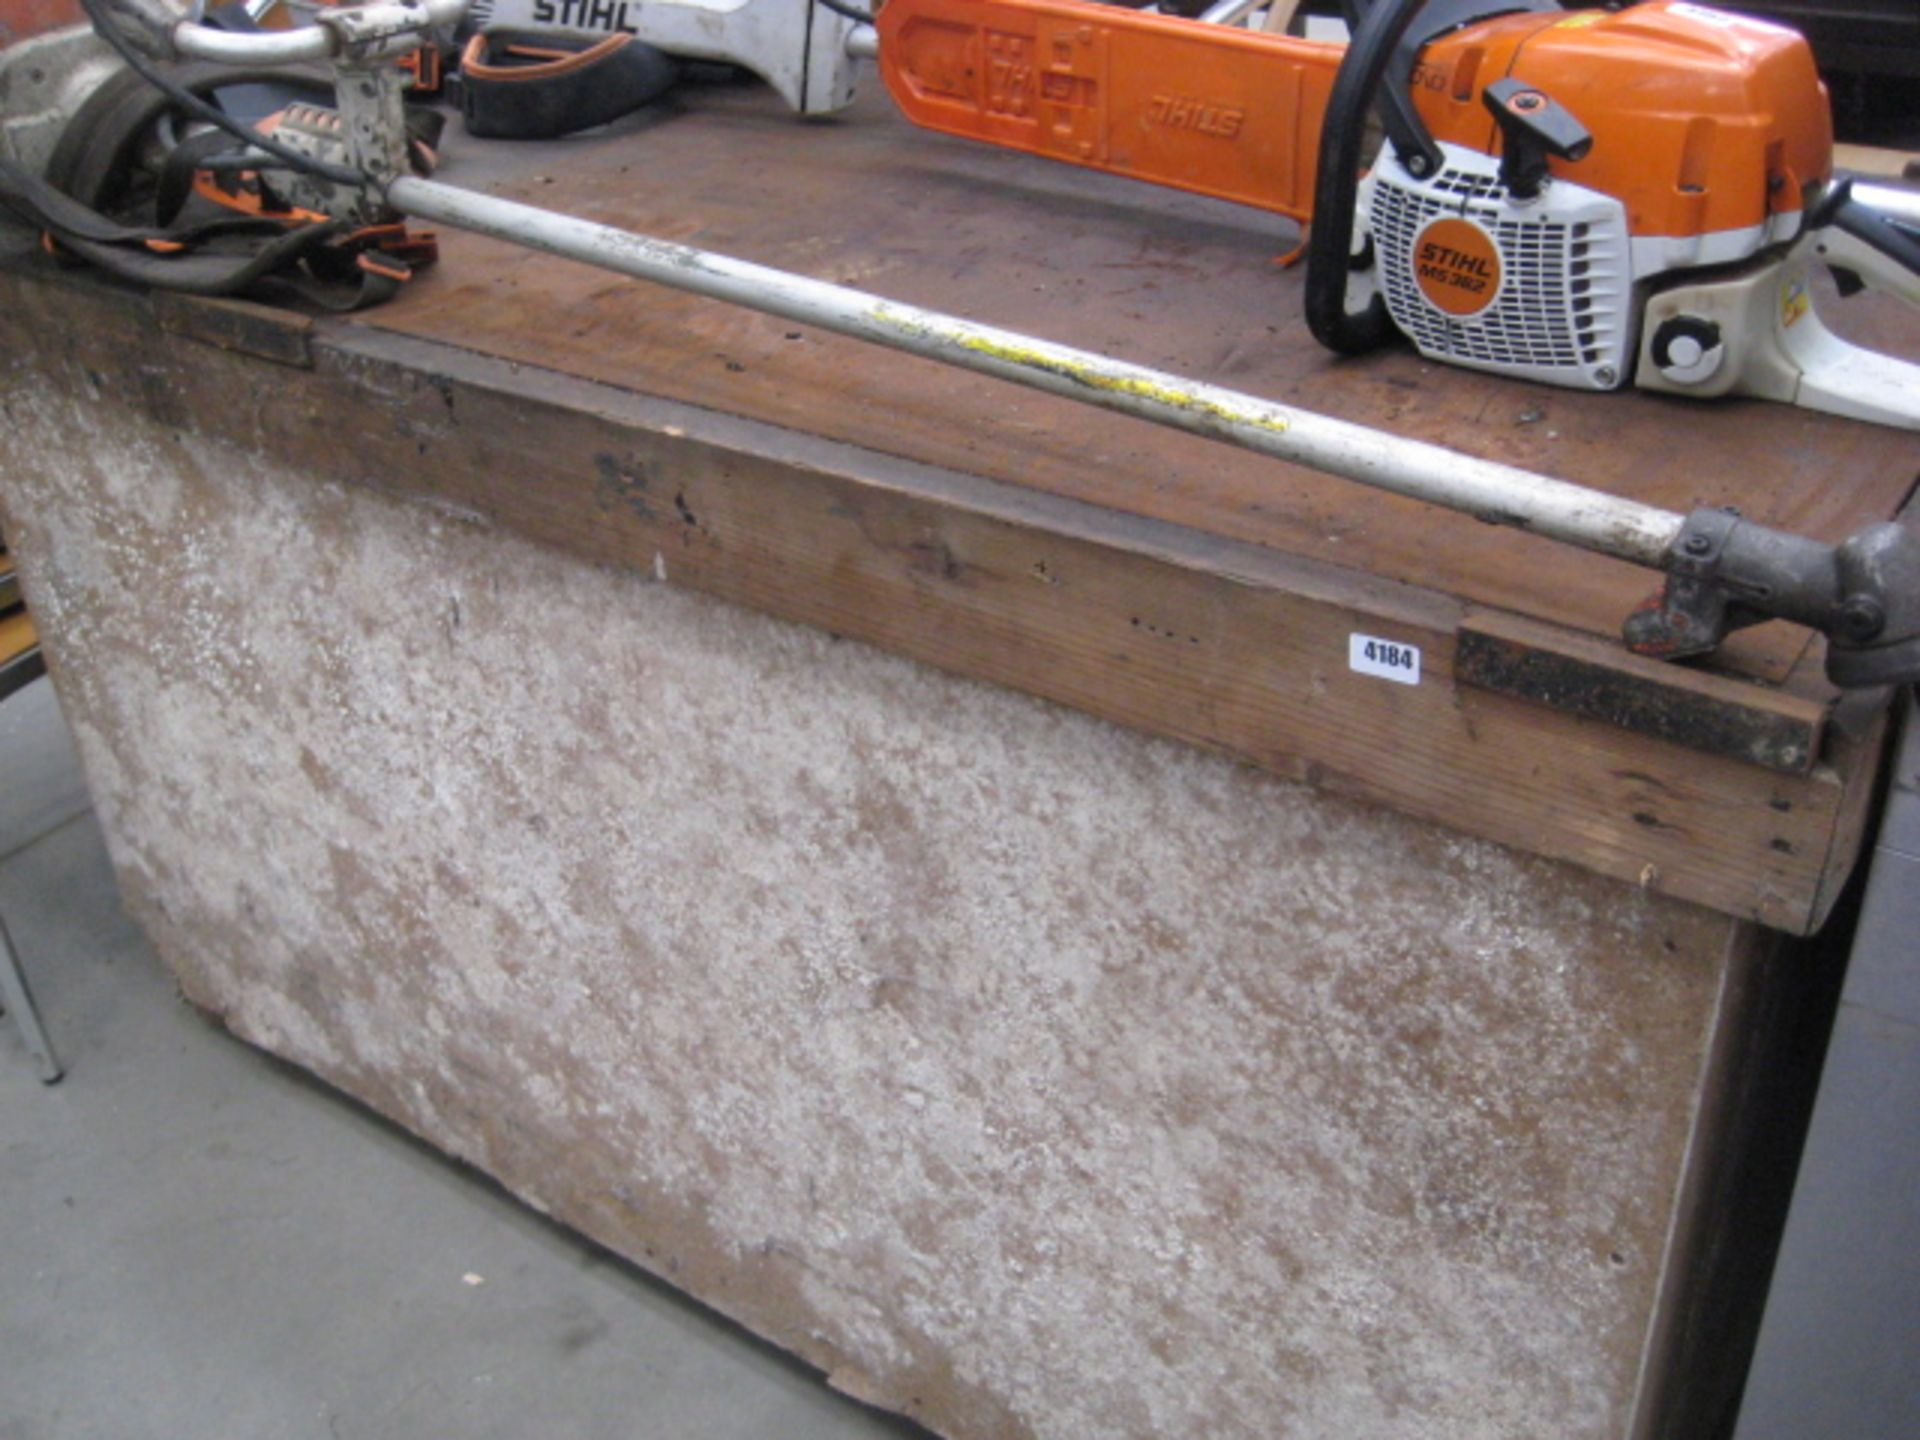 Lot 4184 - Large heavy duty work bench with inch thick steel plate top